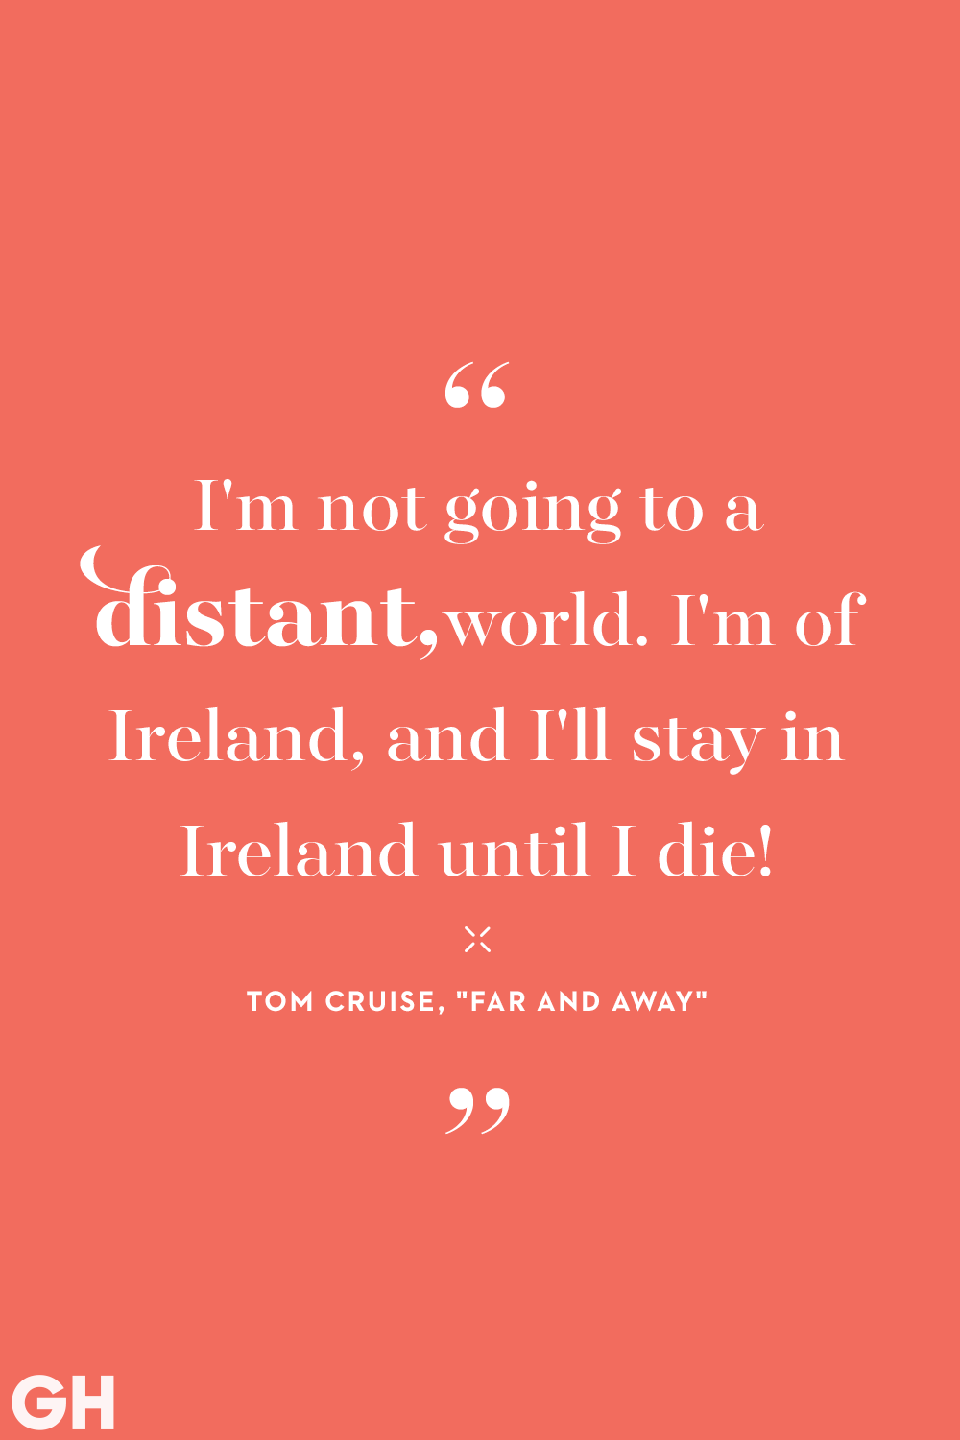 <p>I'm not going to a distant world. I'm of Ireland, and I'll stay in Ireland until I die!</p>